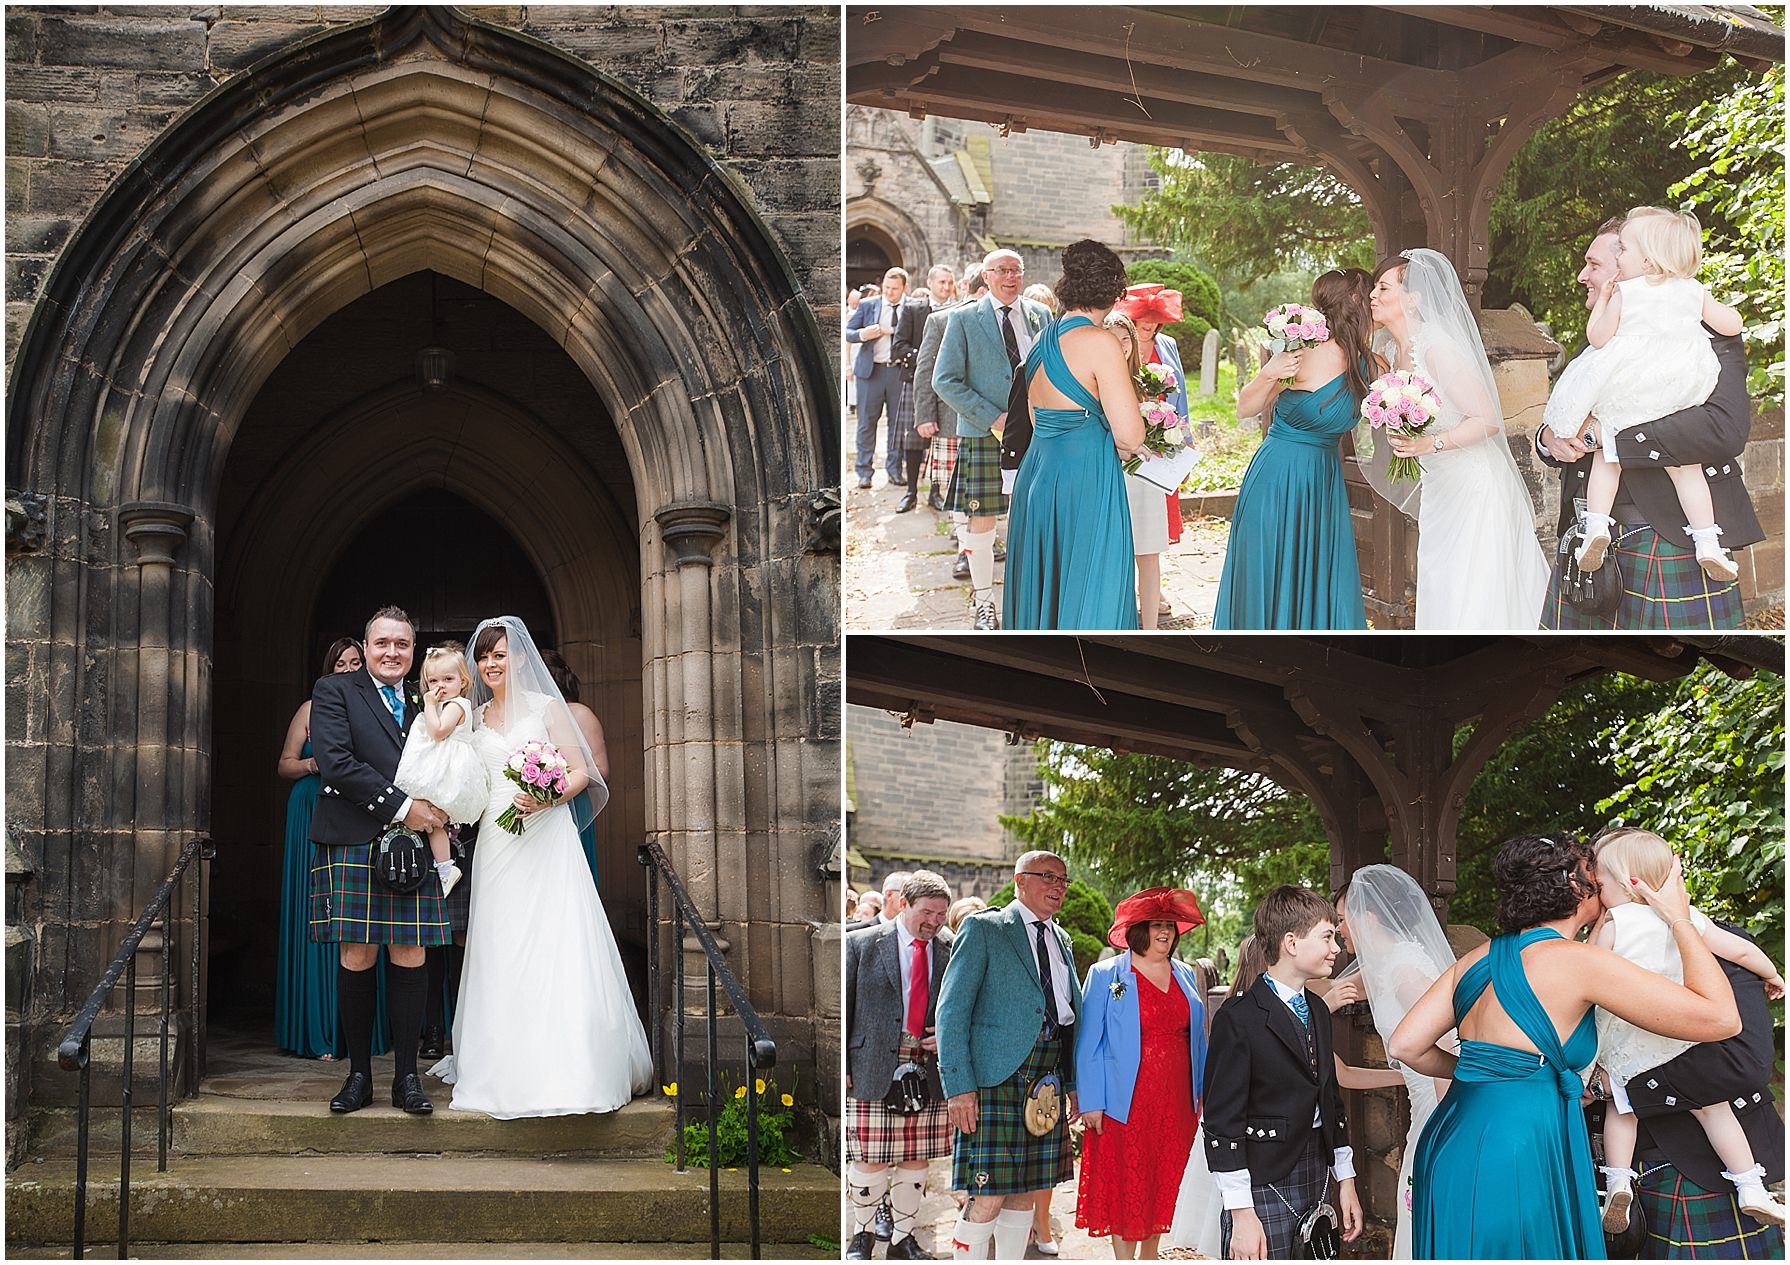 St Mary's church Lymm wedding